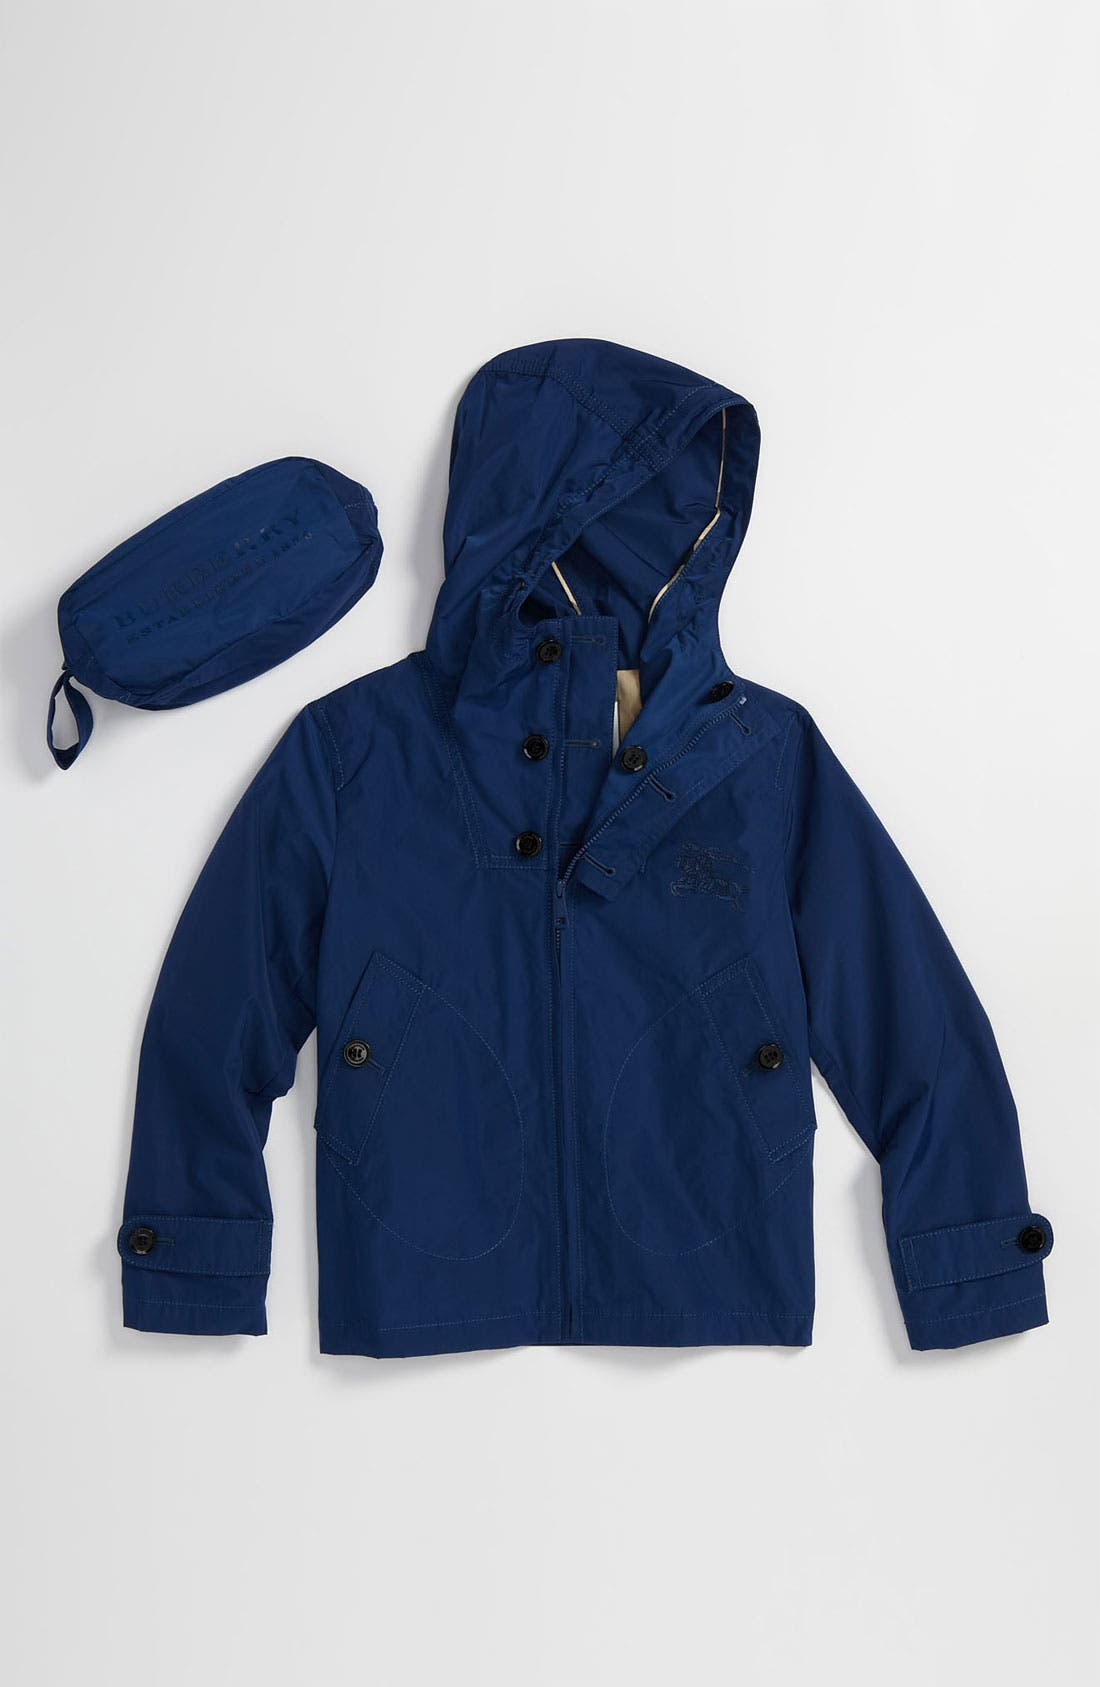 Main Image - Burberry Packable Jacket (Little Boys & Big Boys)